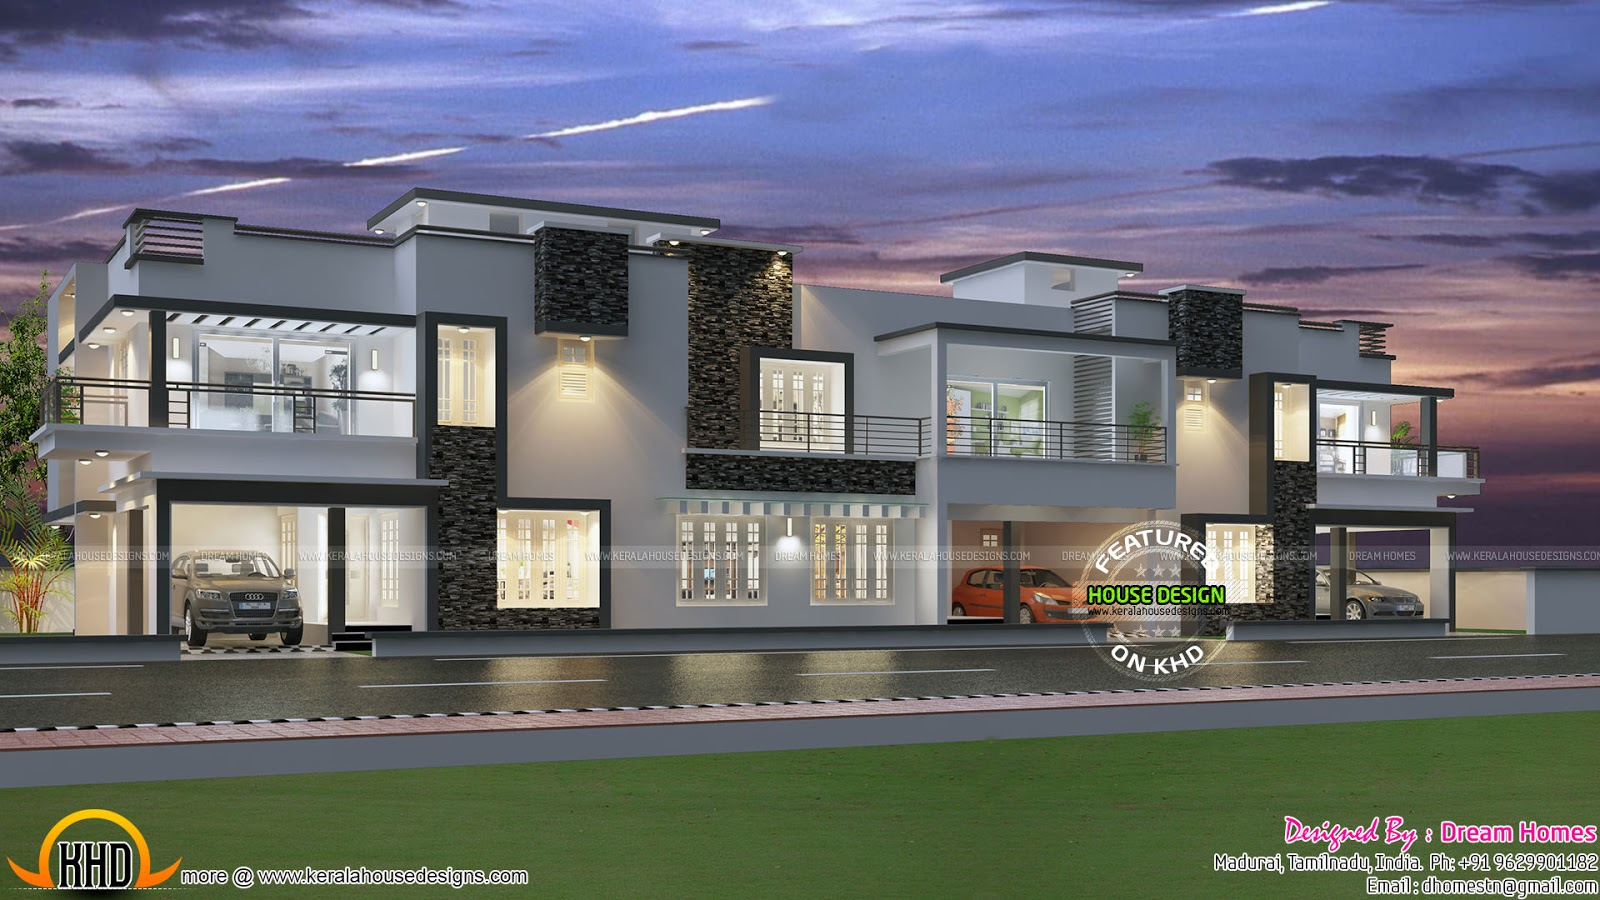 Row house design and plans kerala home design and floor for Row house design plans